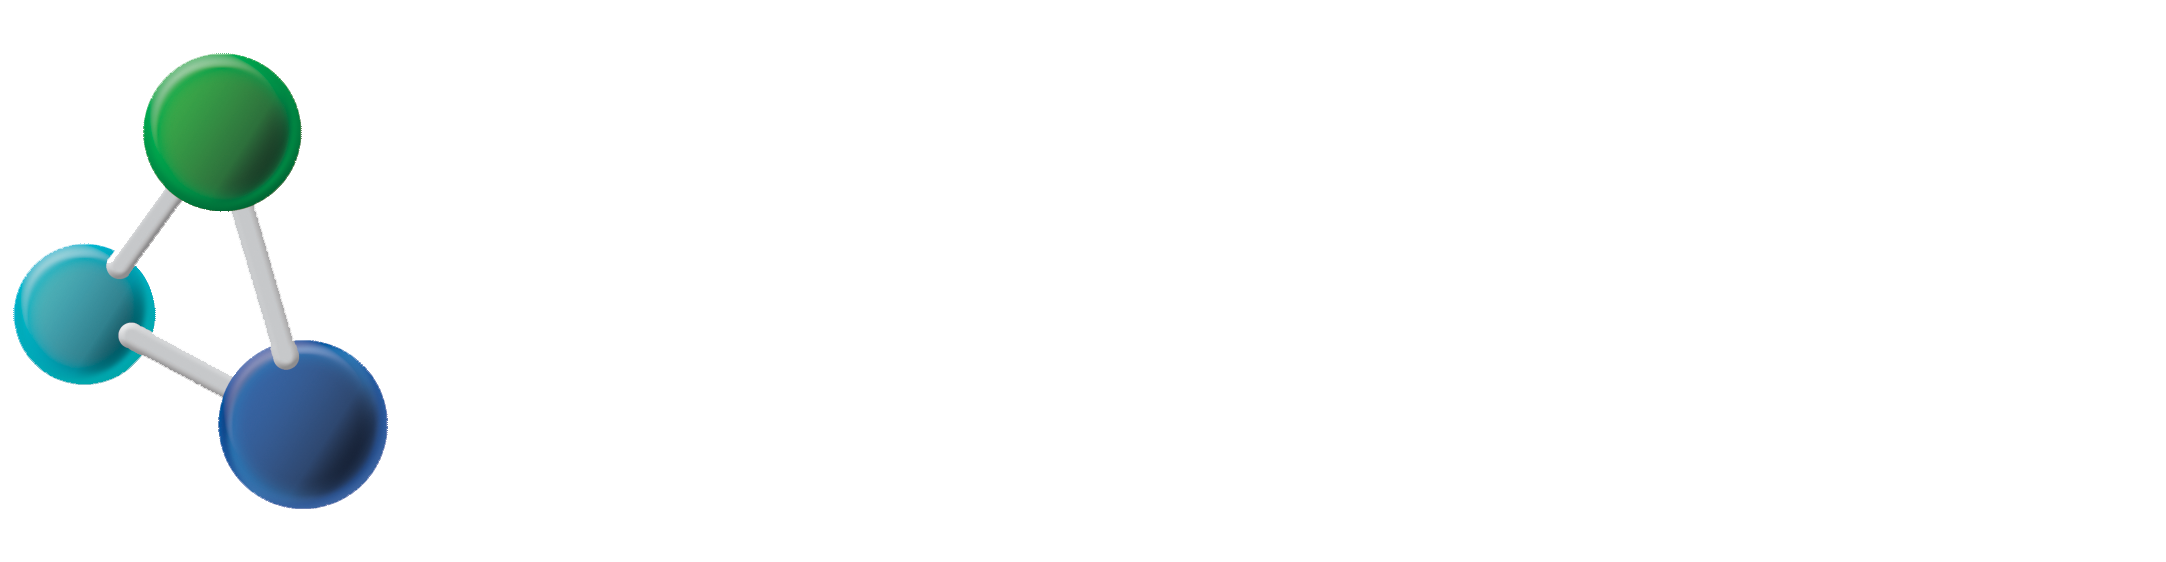 FTF - Pharma Pvt. Ltd.